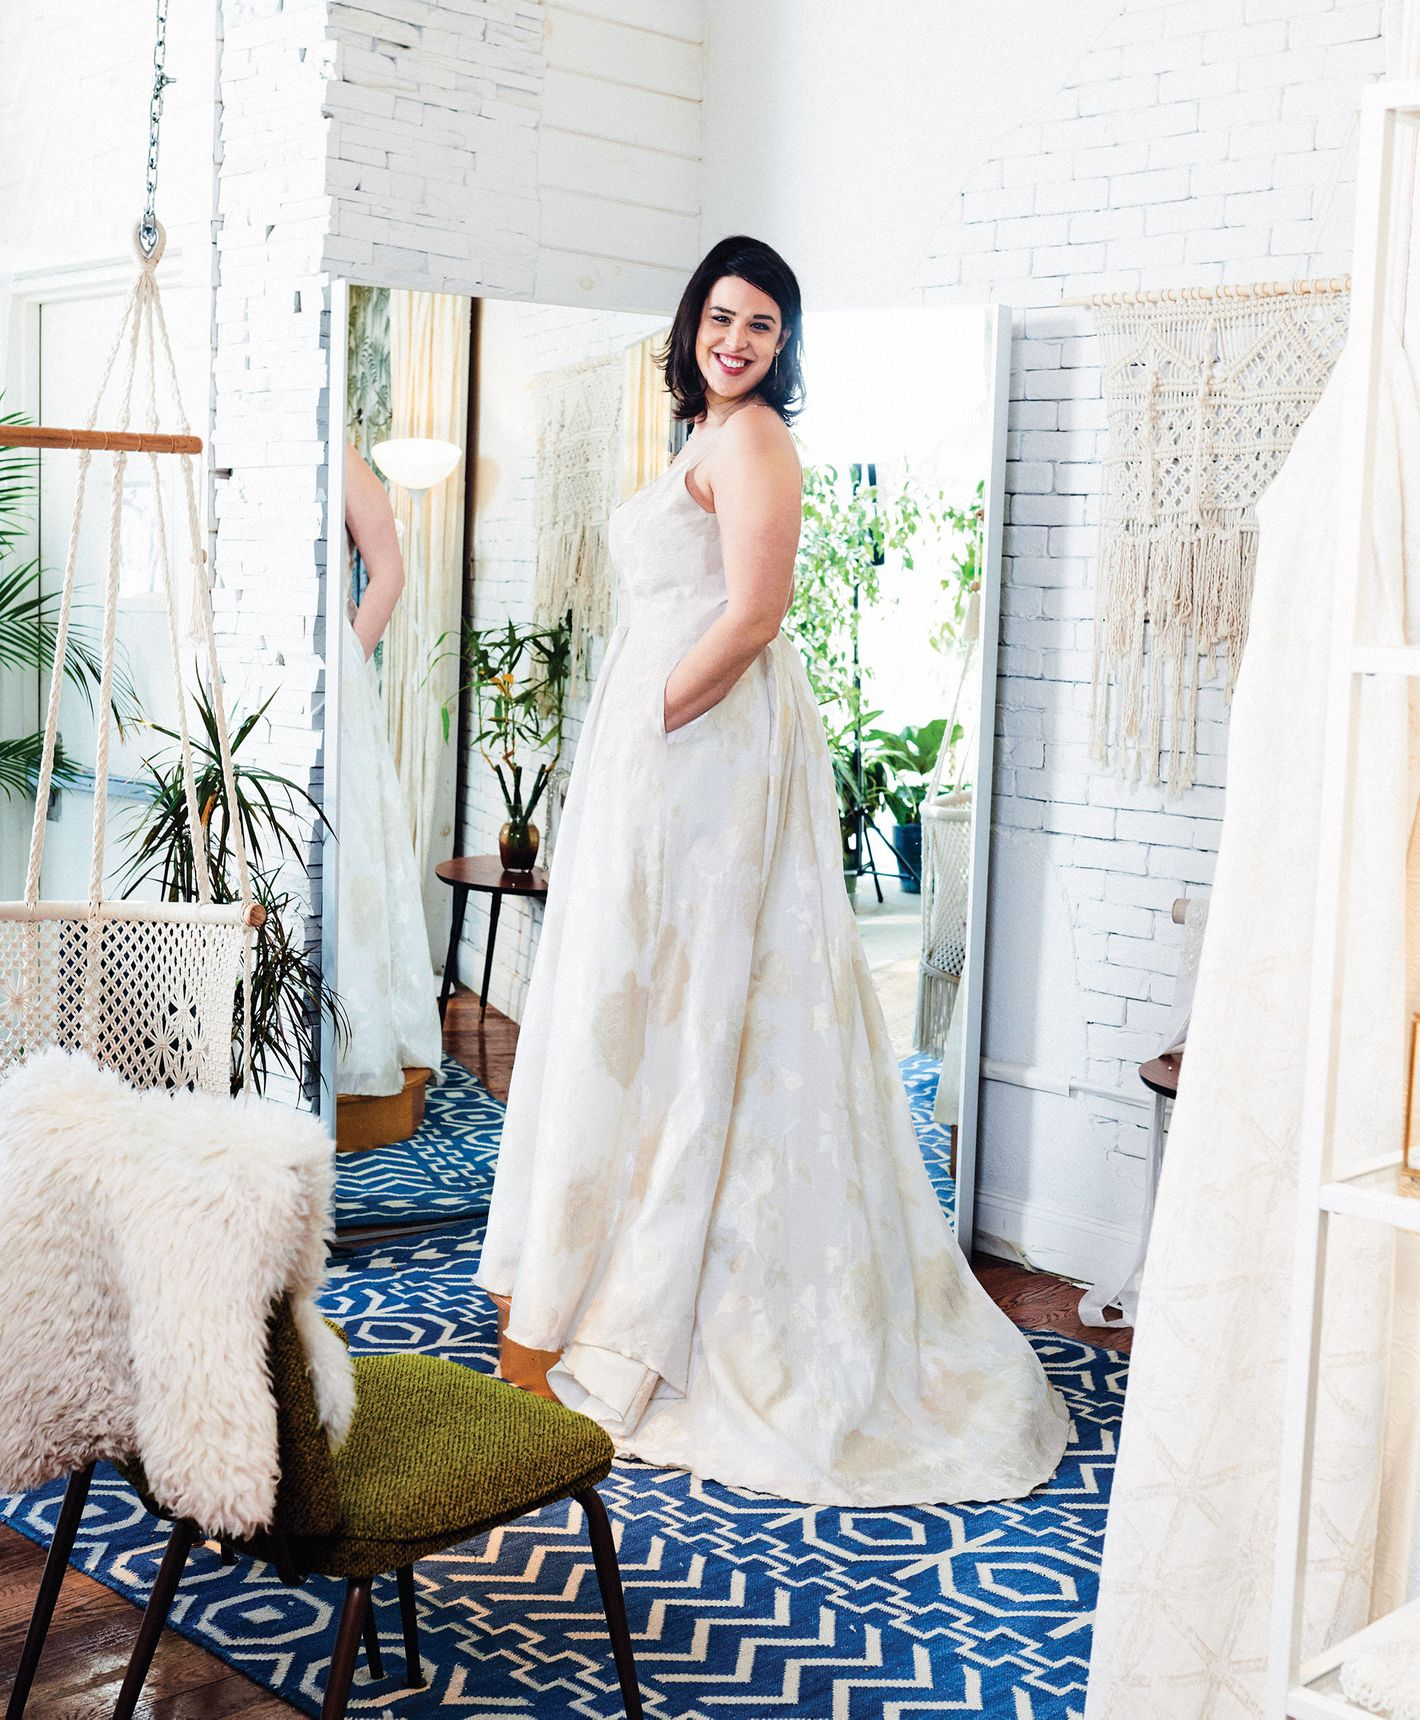 Best Places for Size Inclusive and Plus Size Wedding Gowns